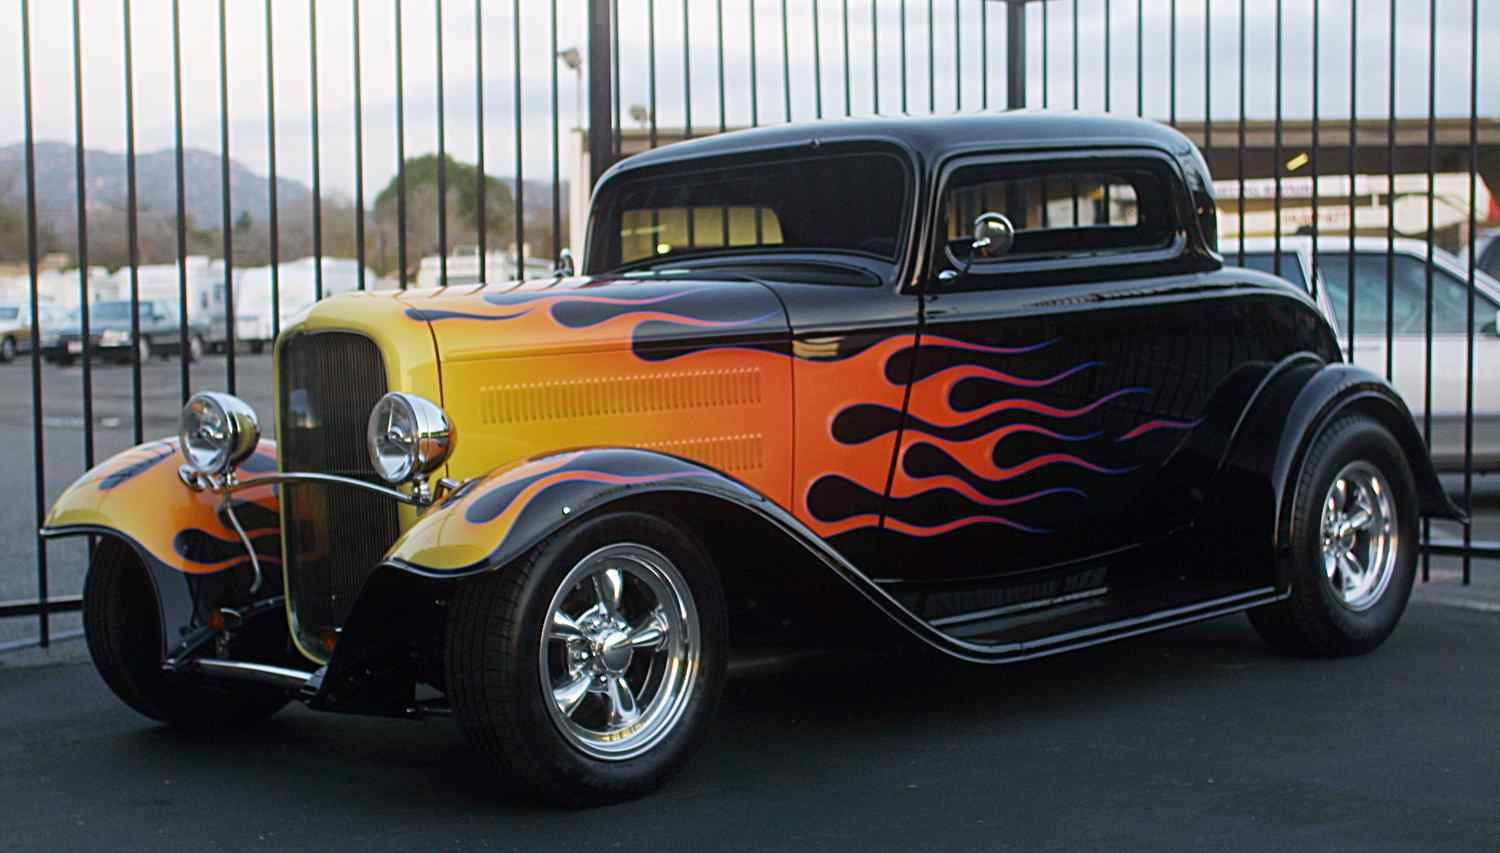 Classic Hot Rod and Street Rod Pictures ----- Hot rods are typically ...